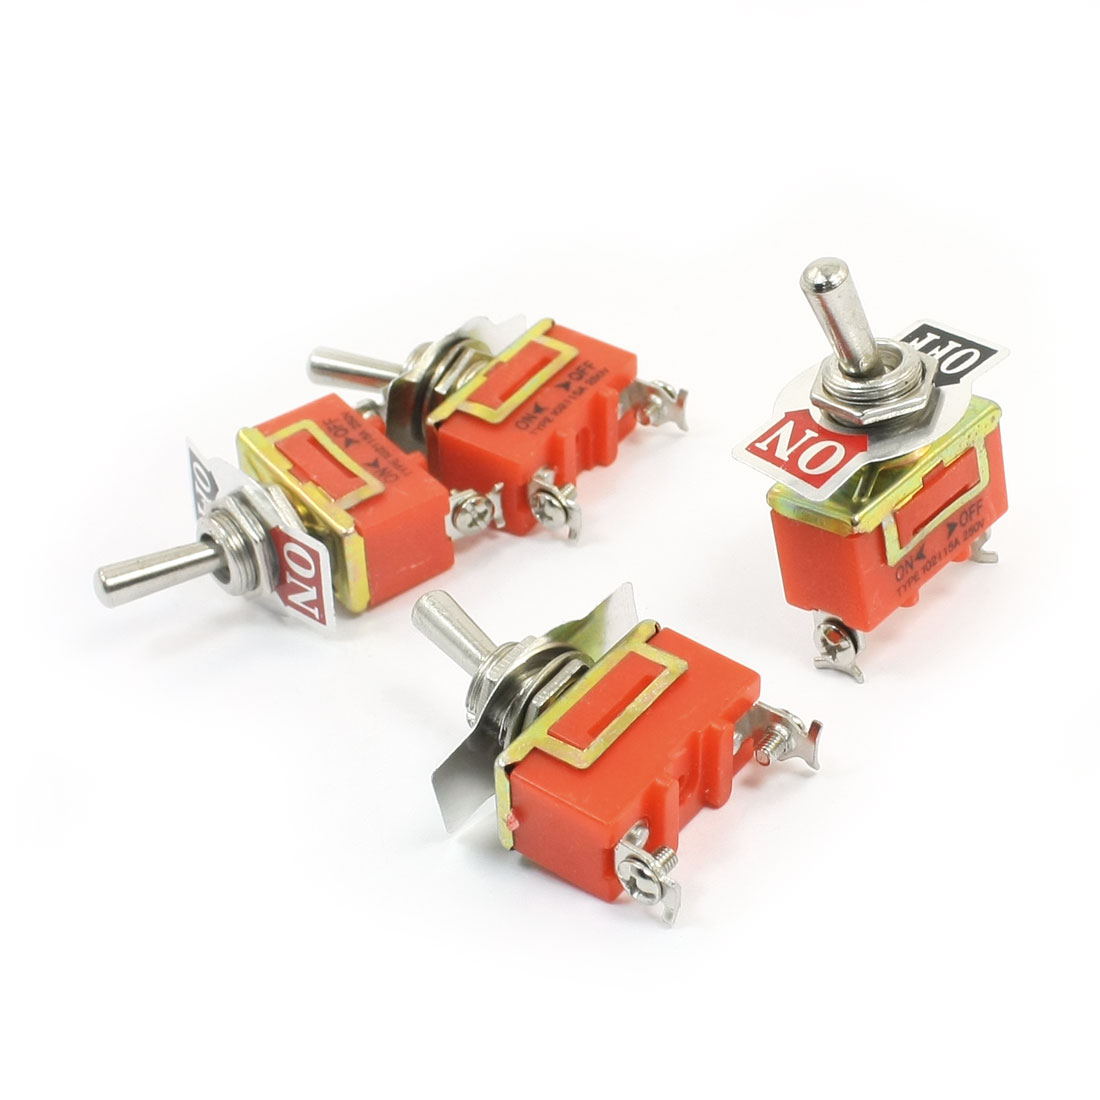 Spare Parts AC 250V 15A ON/OFF 2 Positions 2 Pin Toggle Switch E-TEN1021 4pcs